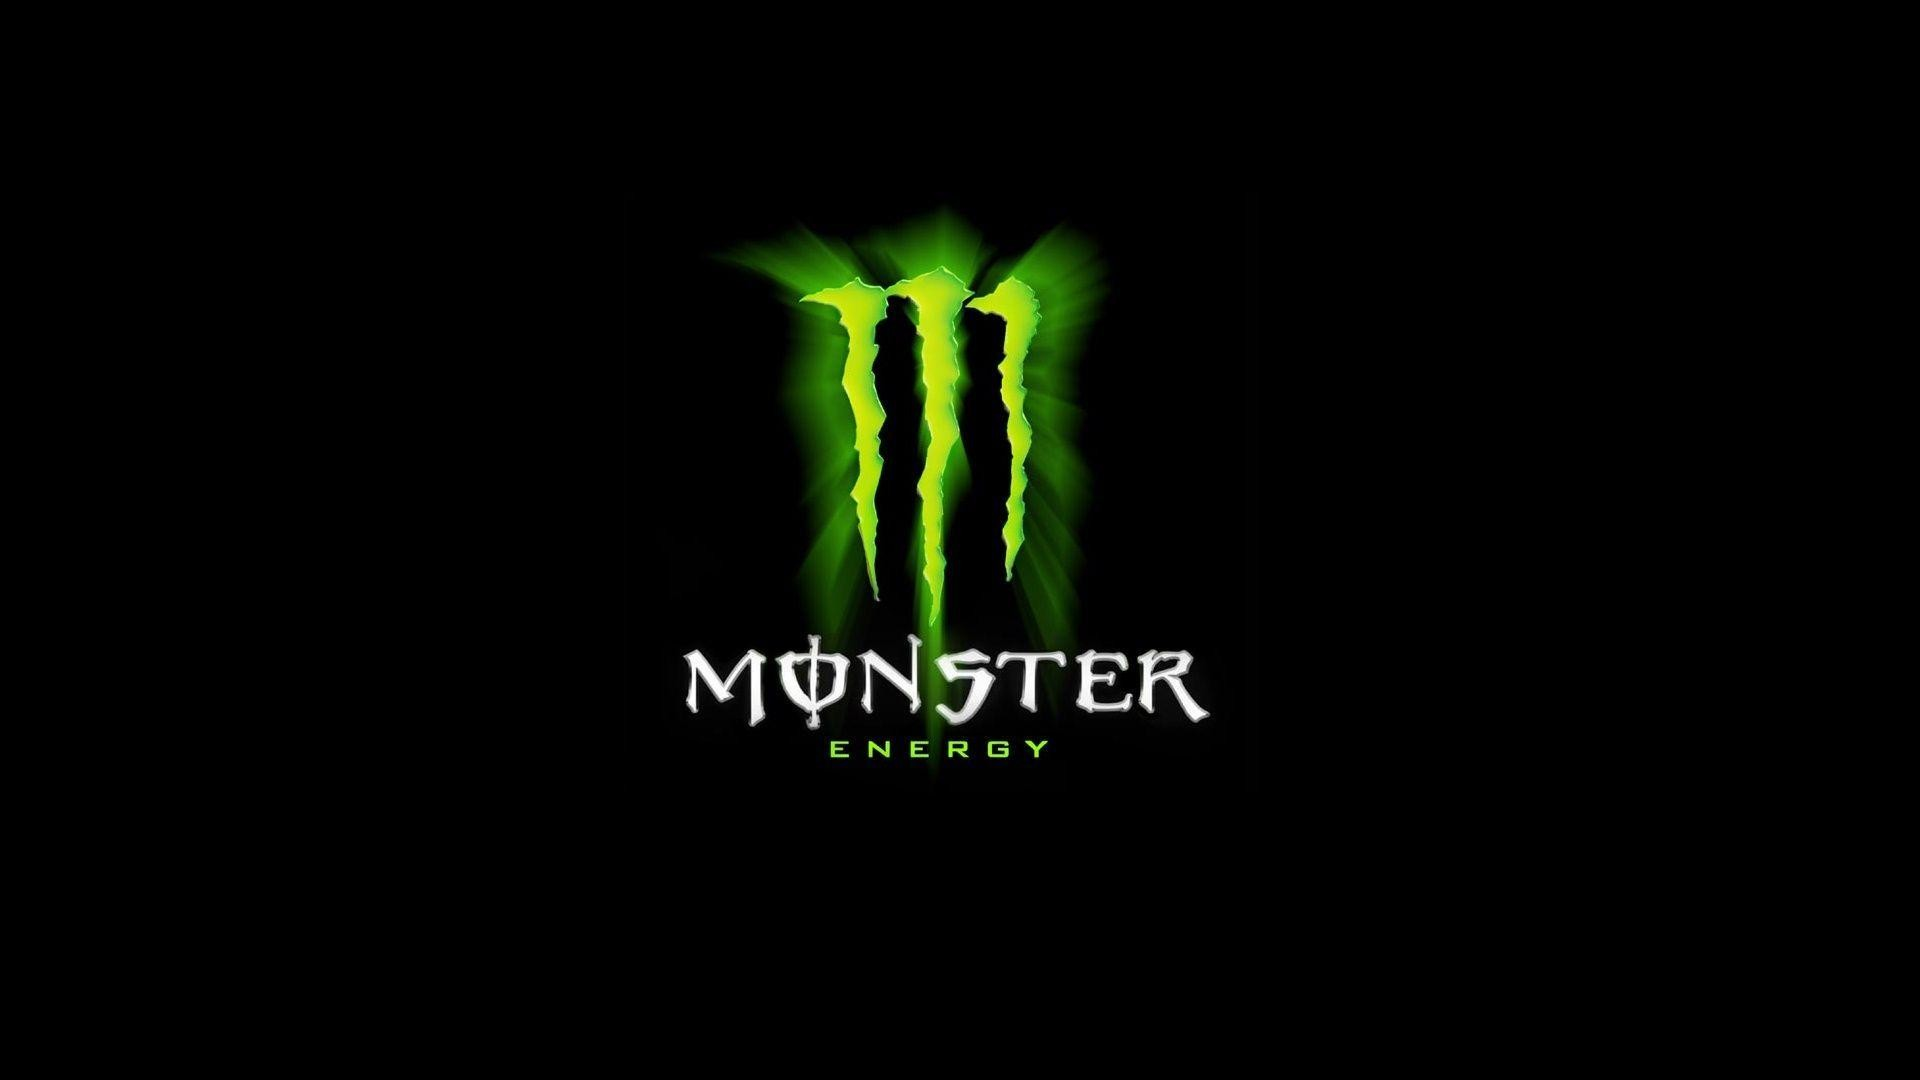 1920x1080 Monster Energy Wallpapers HD